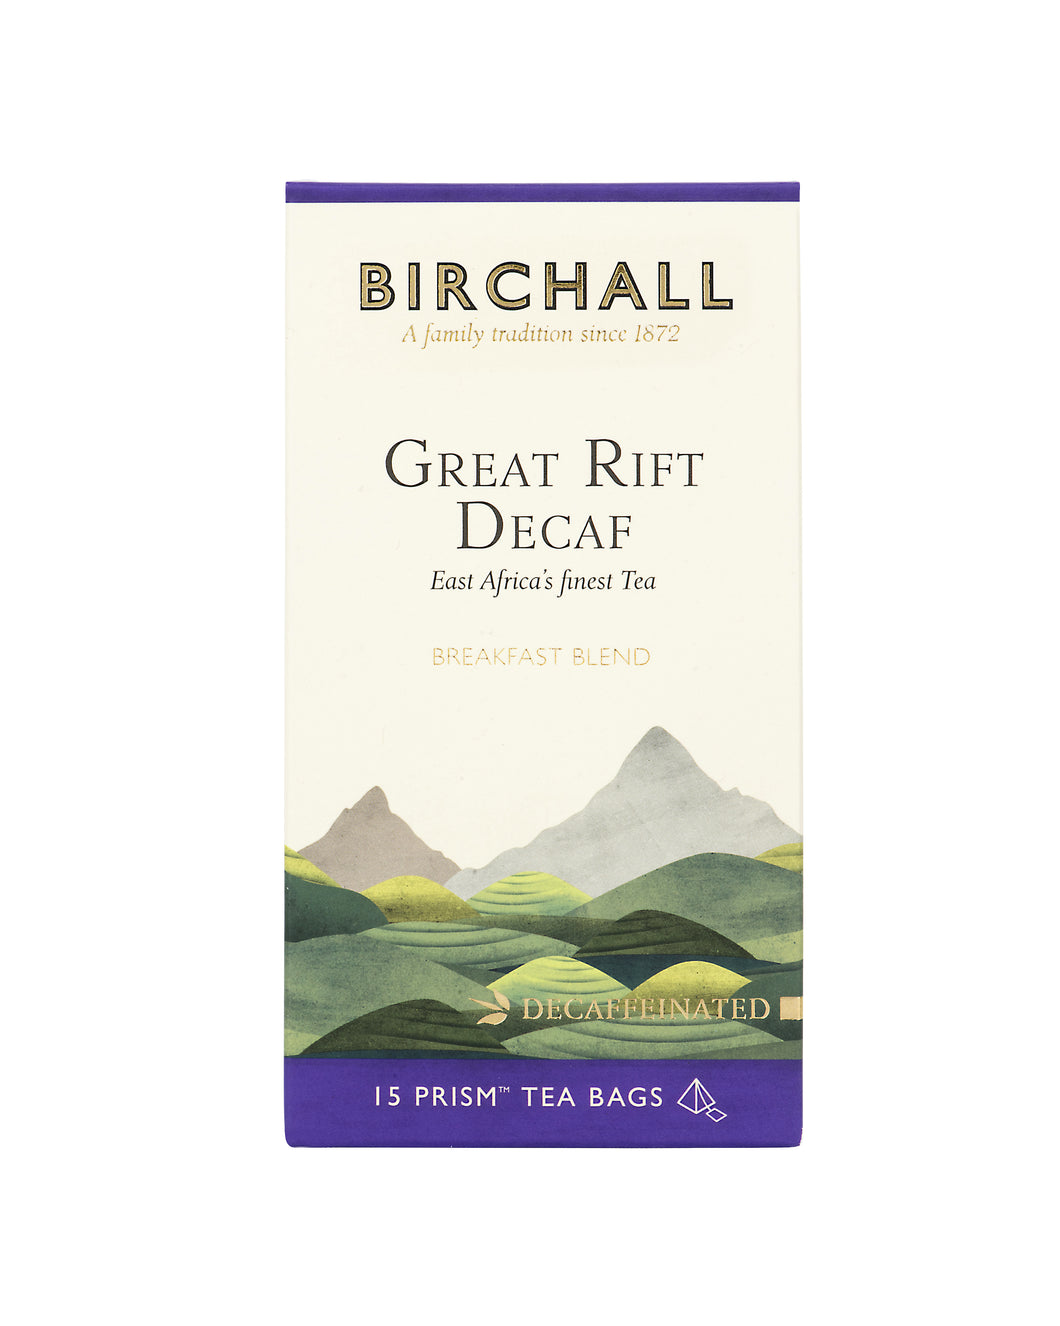 Great Rift Decaf 15 Plant Based Prism Tea Bags